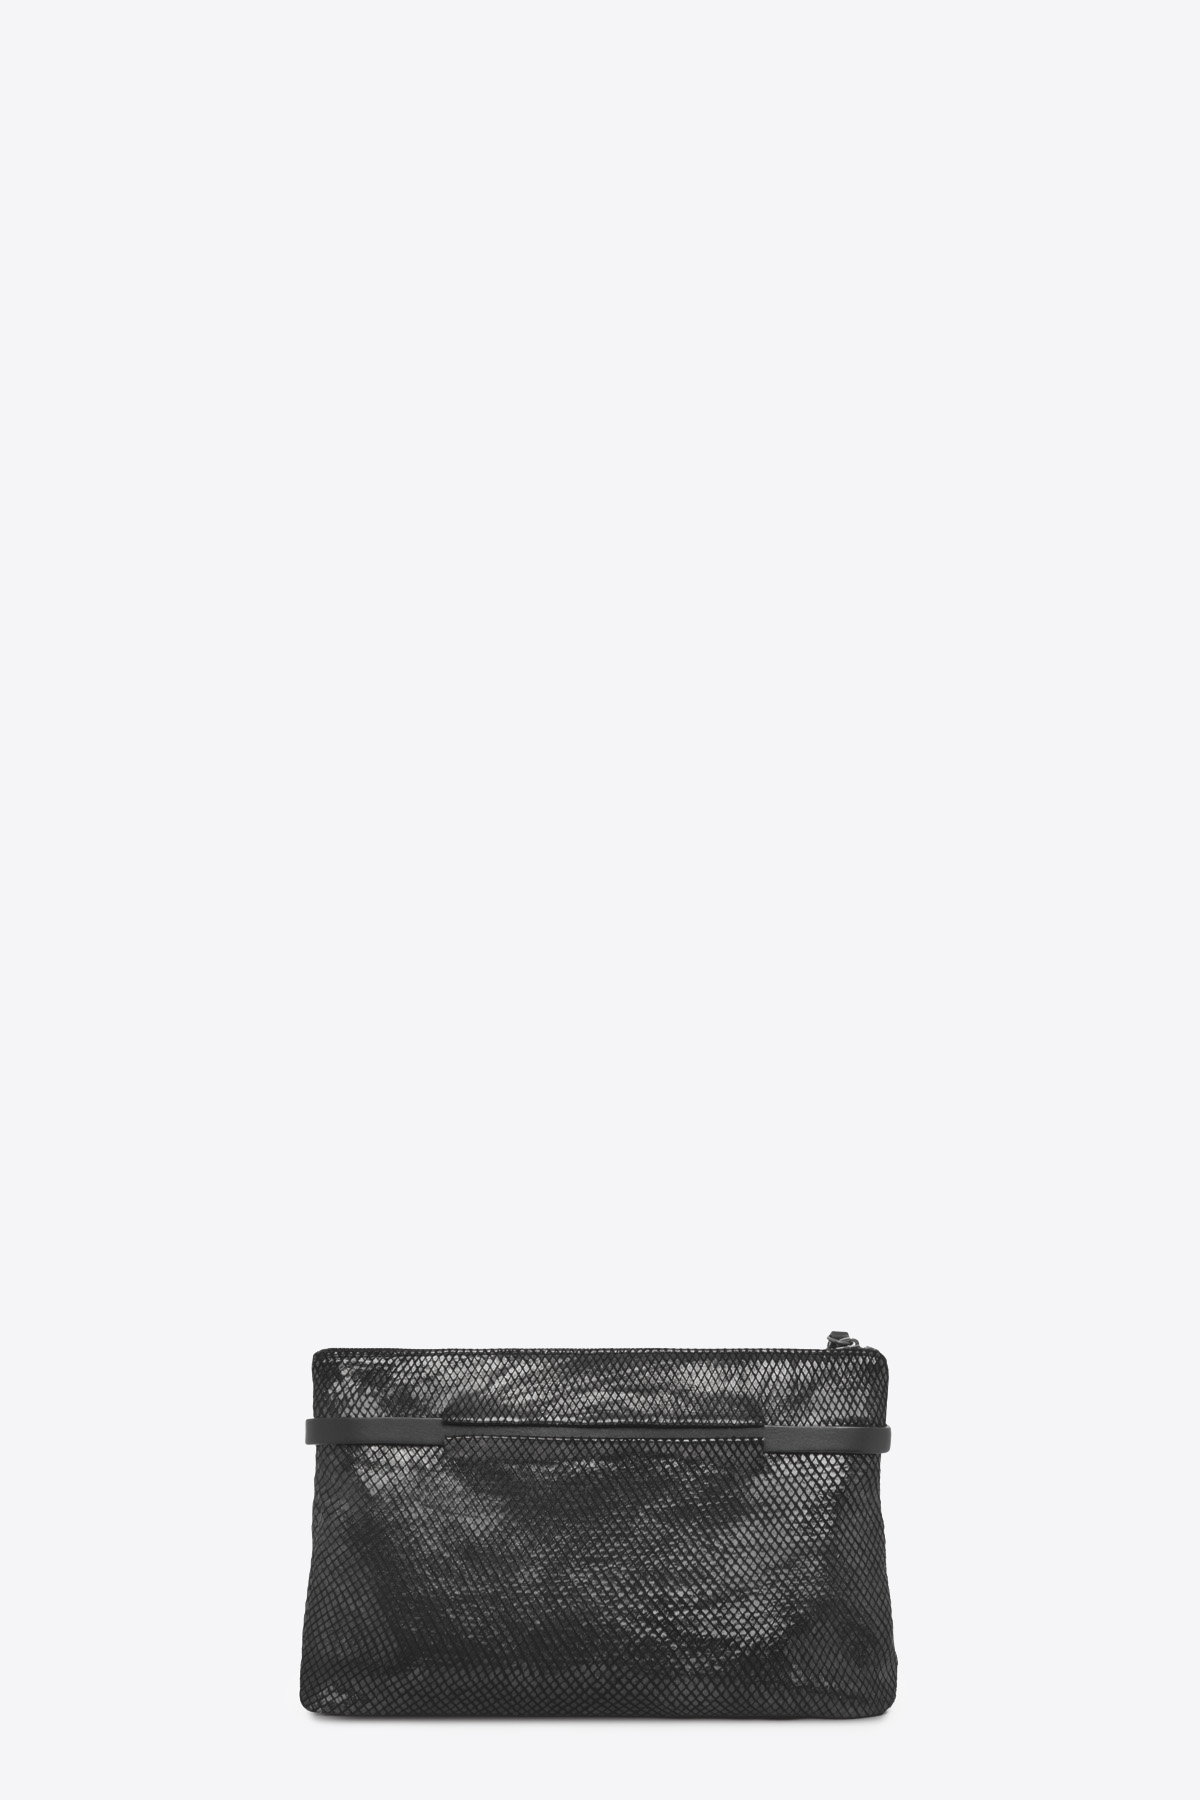 dclr004s-tapeclutch-a23-backsnakeblack-back